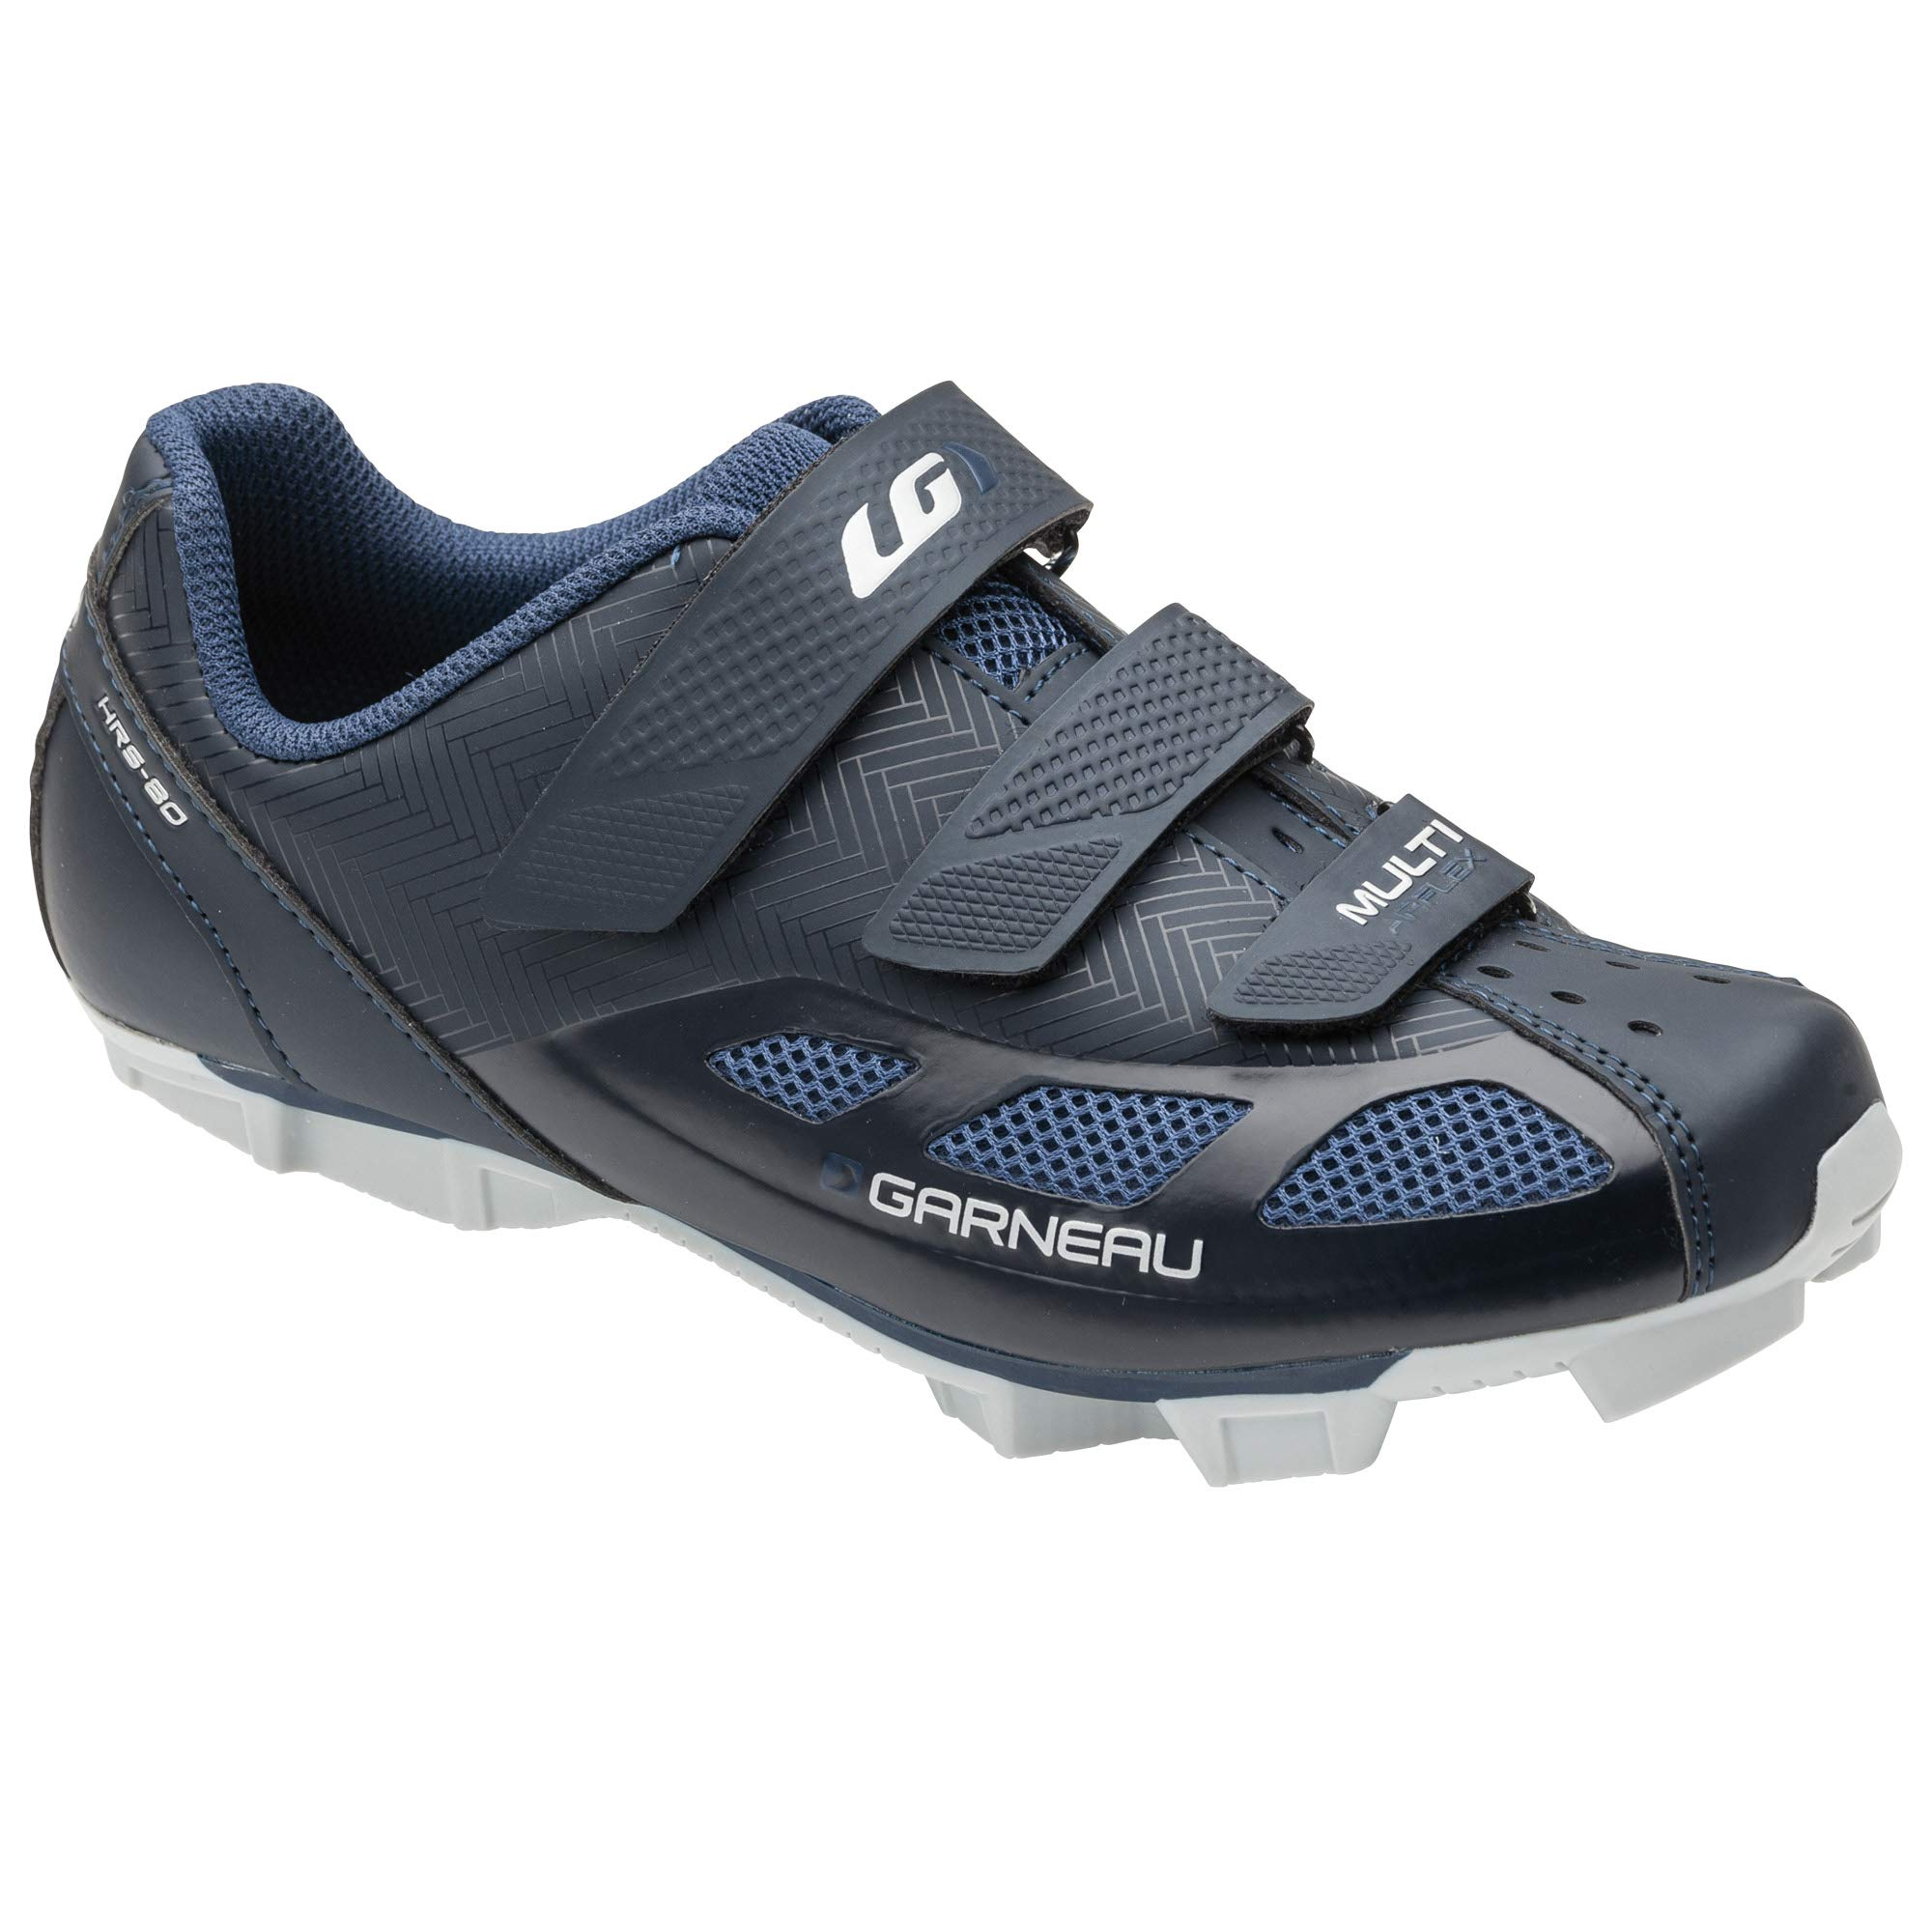 Louis Garneau Women's Multi Air Flex Bike Shoes for Indoor Cycling, Commuting and MTB, SPD Cleats Compatible with MTB Pedals, Mat Black Navy, US (10), EU (41) by Louis Garneau